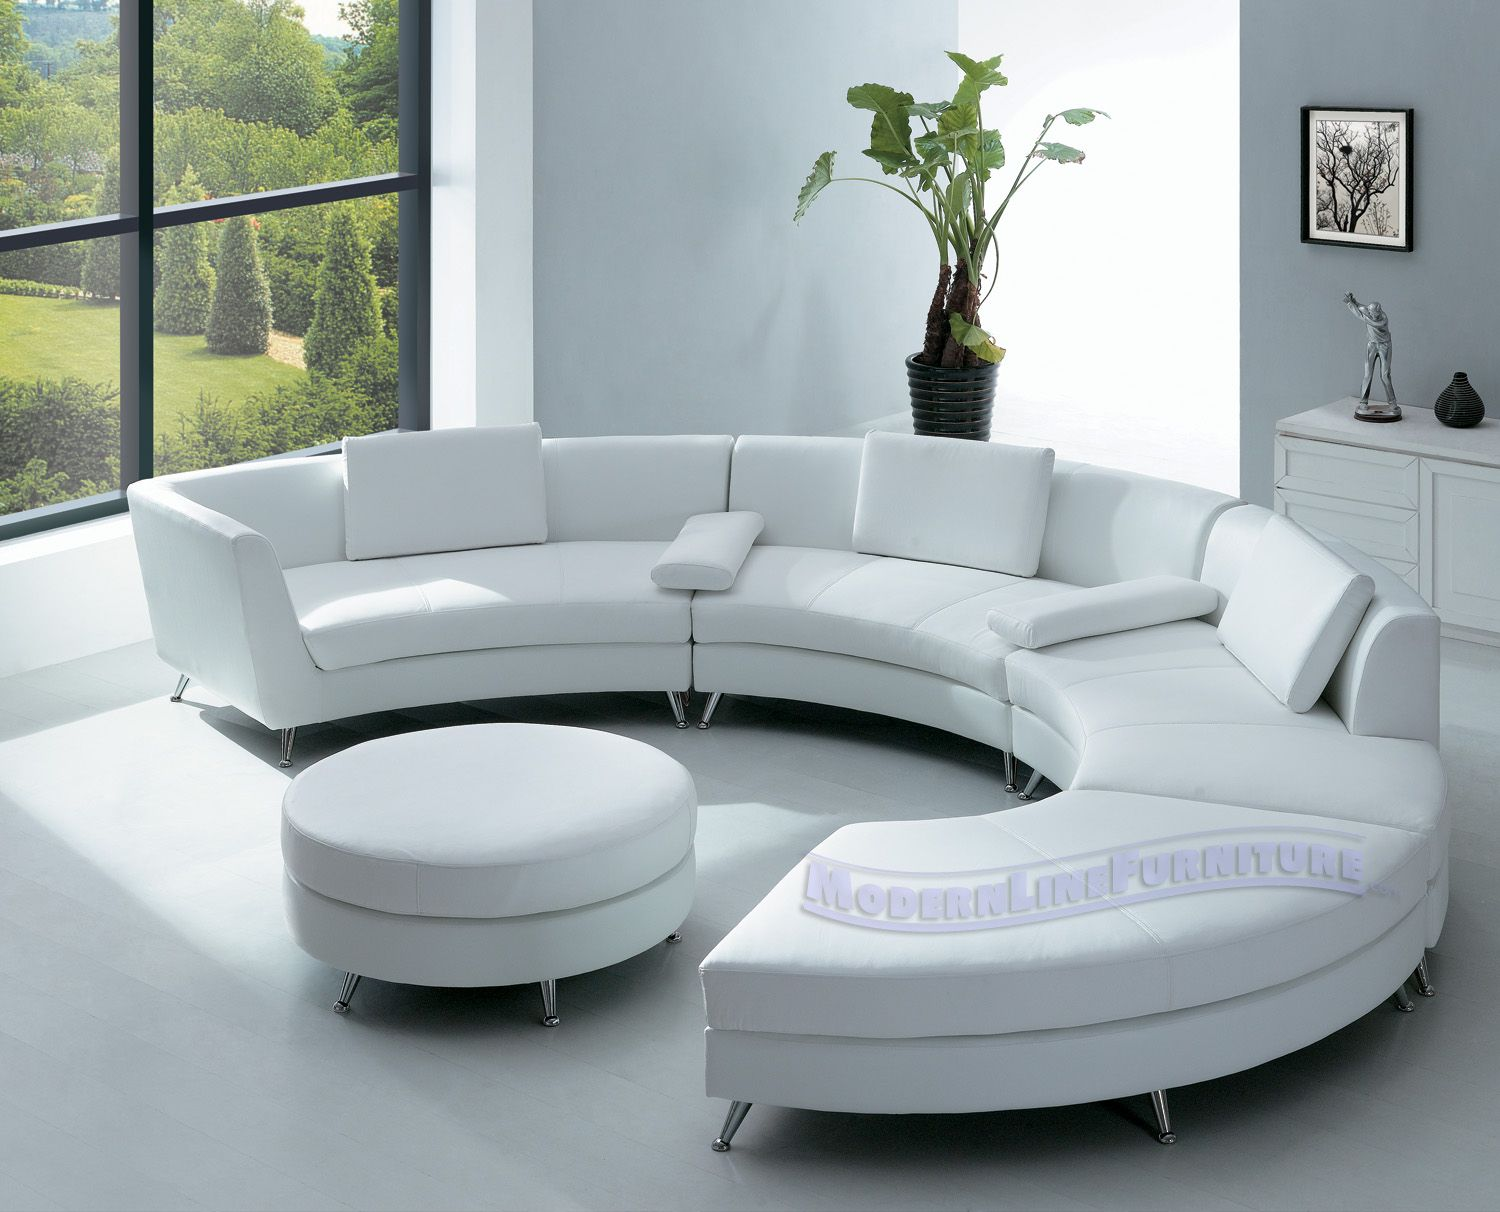 Couches Designs best 25+ contemporary sofa ideas on pinterest | modern couch